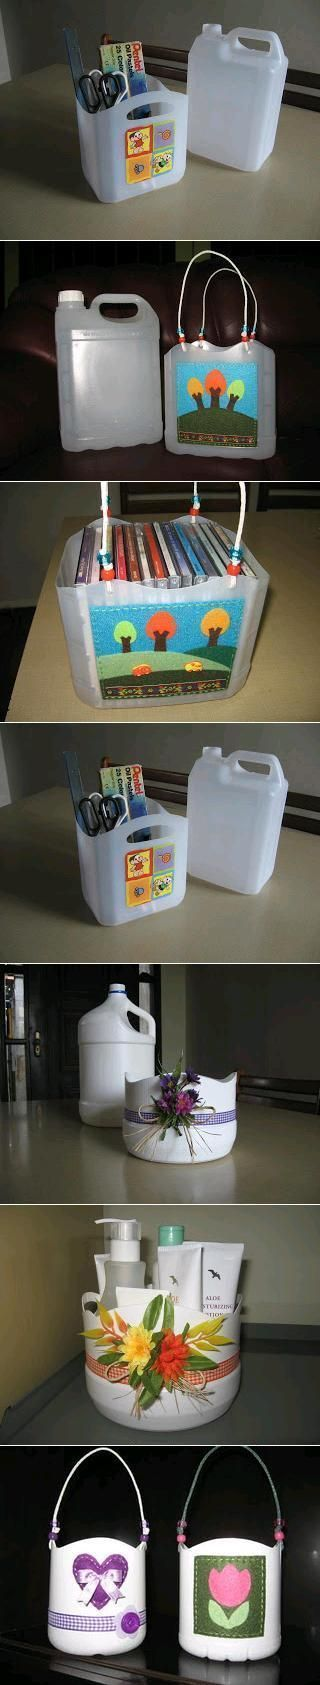 DIY Plastic Bottle Baskets DIY Plastic Bottle Baskets: